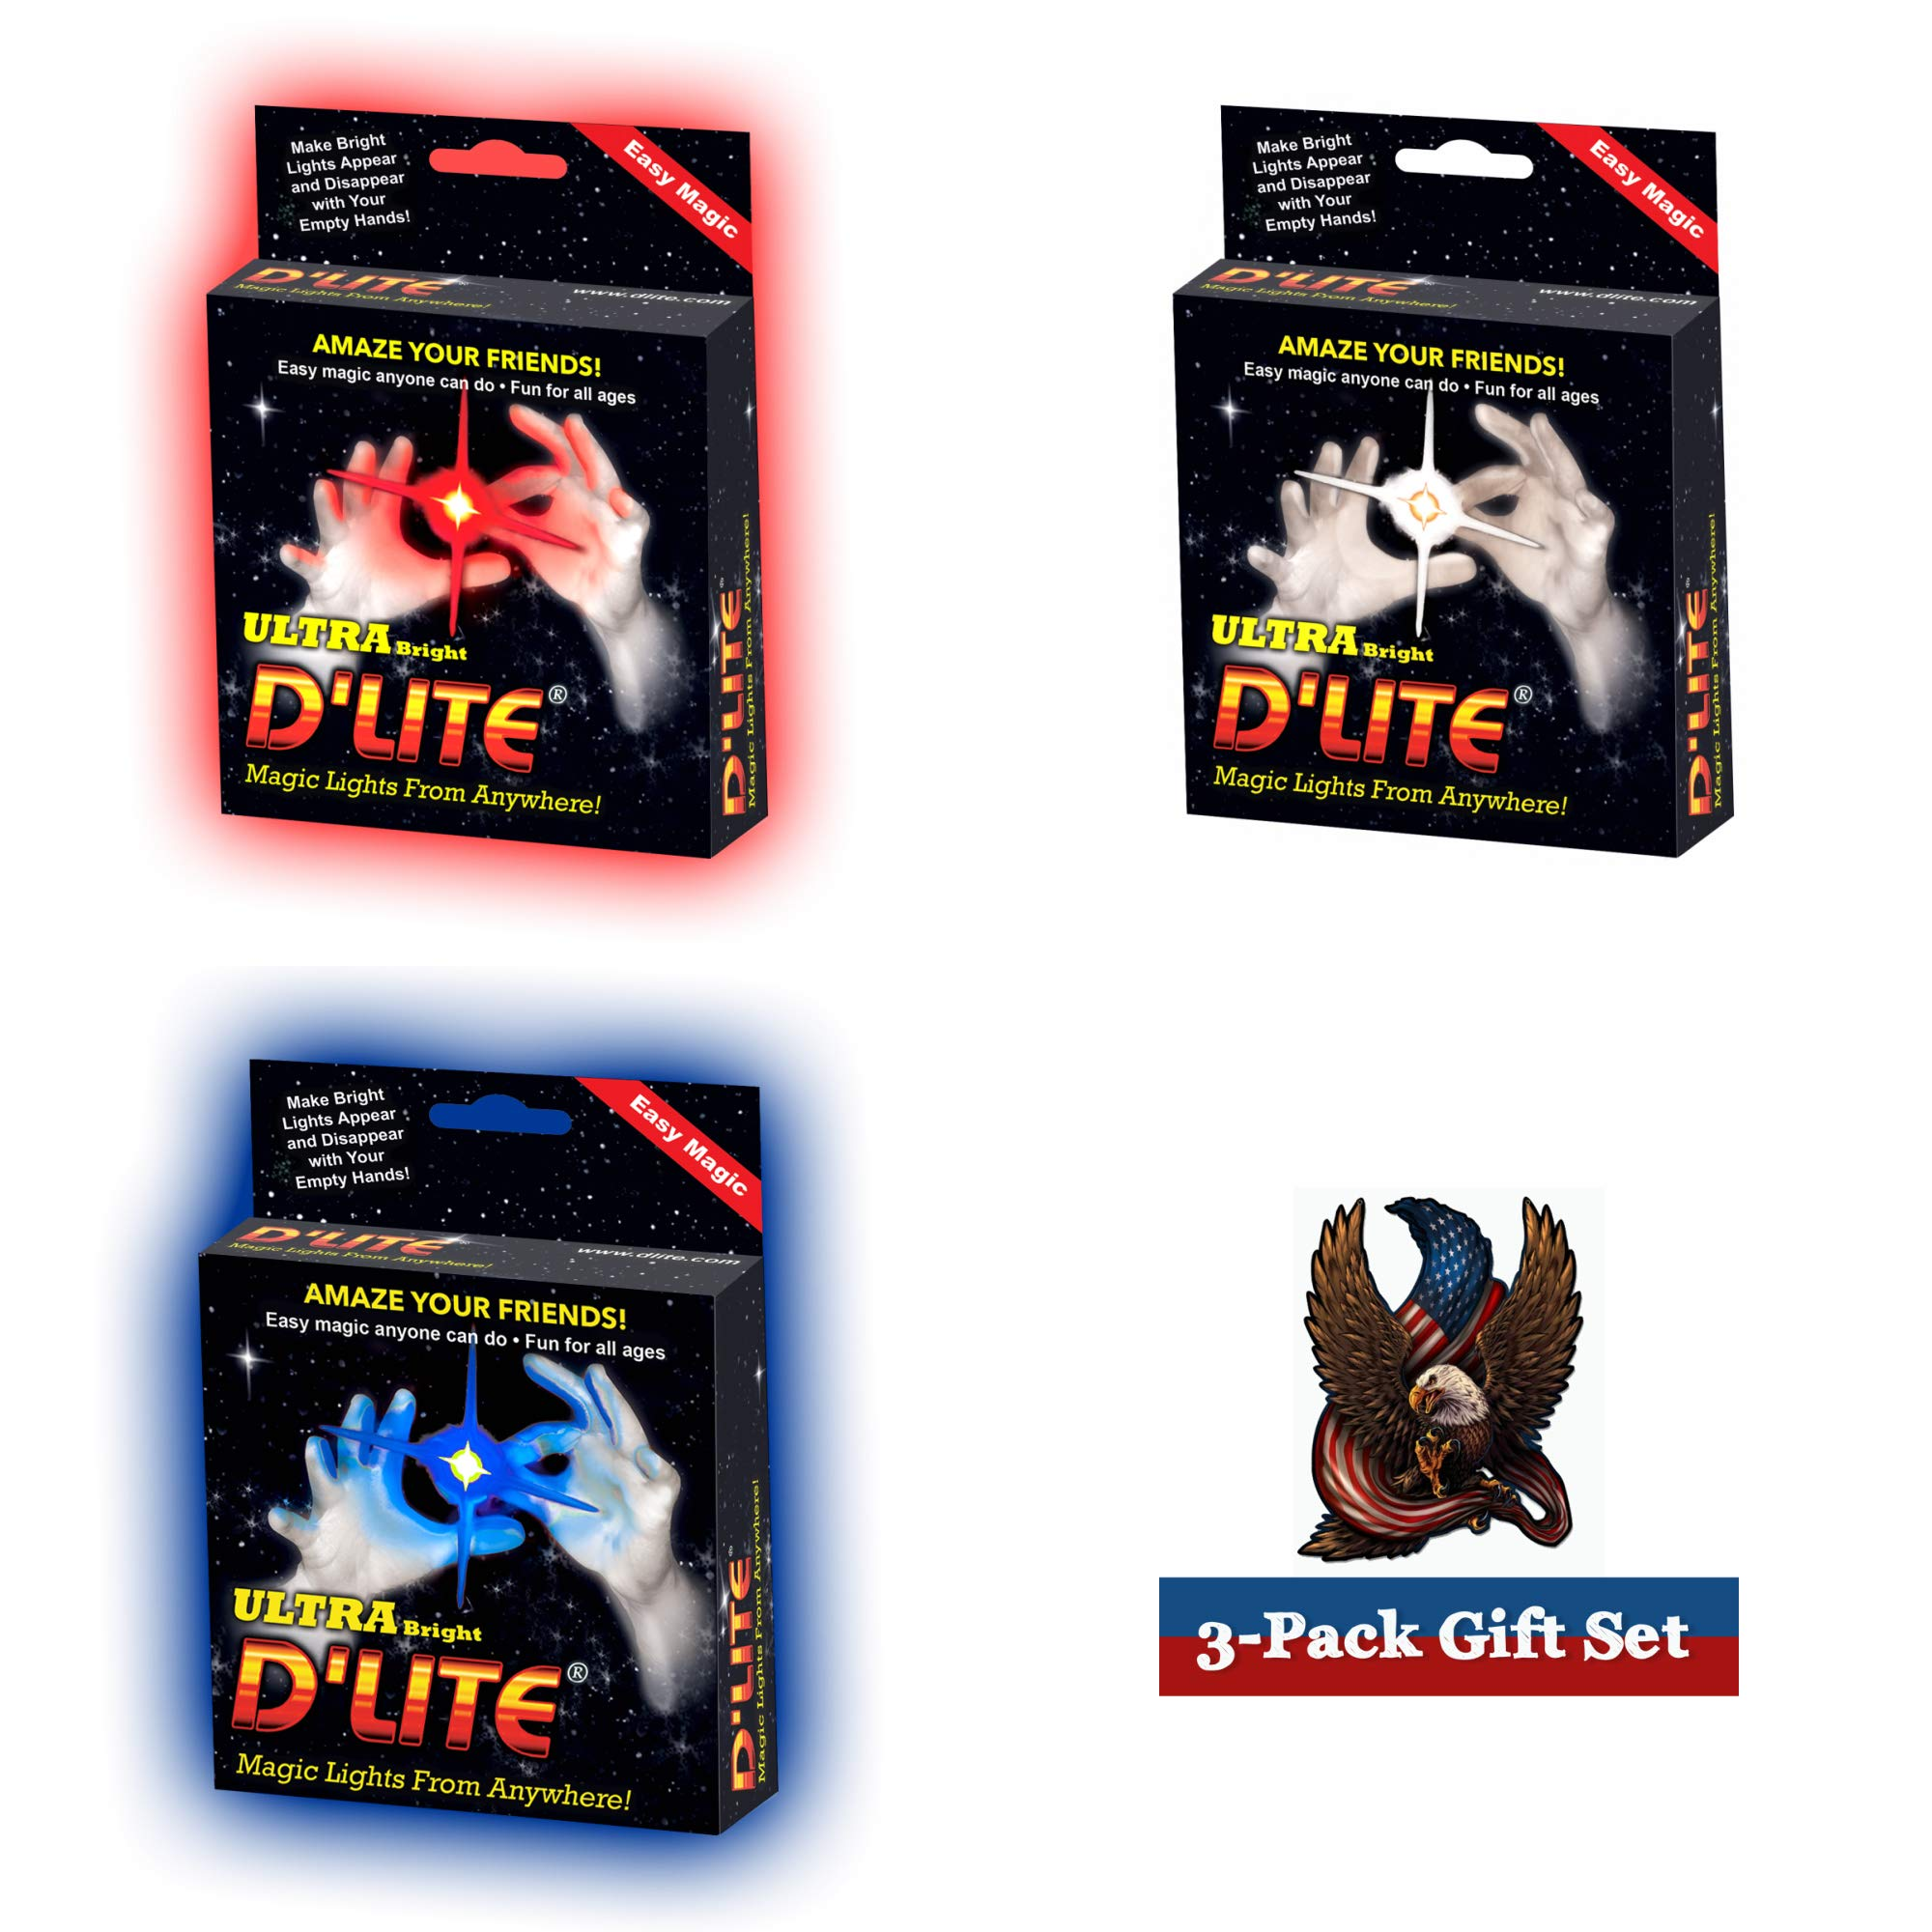 D'lite 4th of July Regular - Set of 3 Red - White - Blue Lightup Magic Thumbs - Original Ultra Bright Light - Closeup Stage Tricks - Easy - Free Training Video See Box (4thRG)